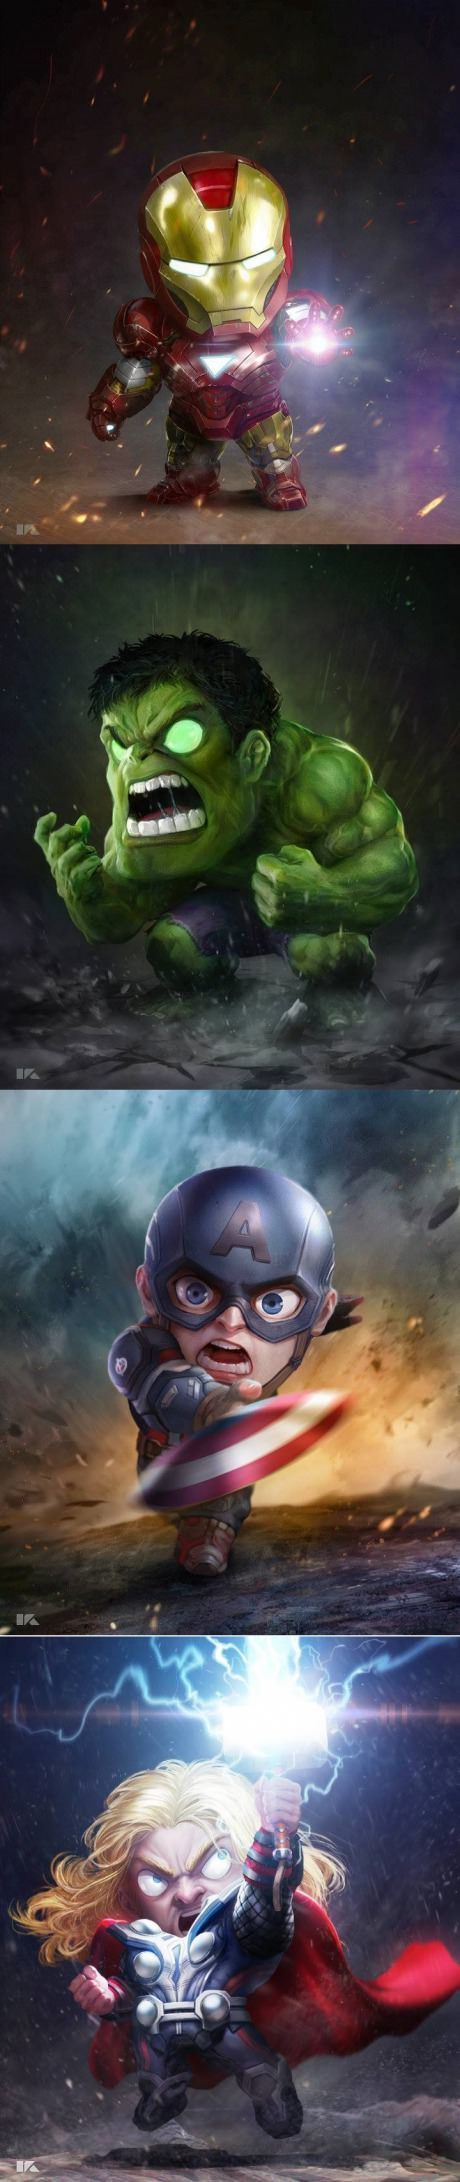 The Hulk, Bruce Banner, Thor, Captain America, Iron Man, Tony, Stark, Heroes, Super Heroes, Cartoons, Drawing, Sketches, Doodles, Comics, Comic Con, Mini Hero, Super Hero,